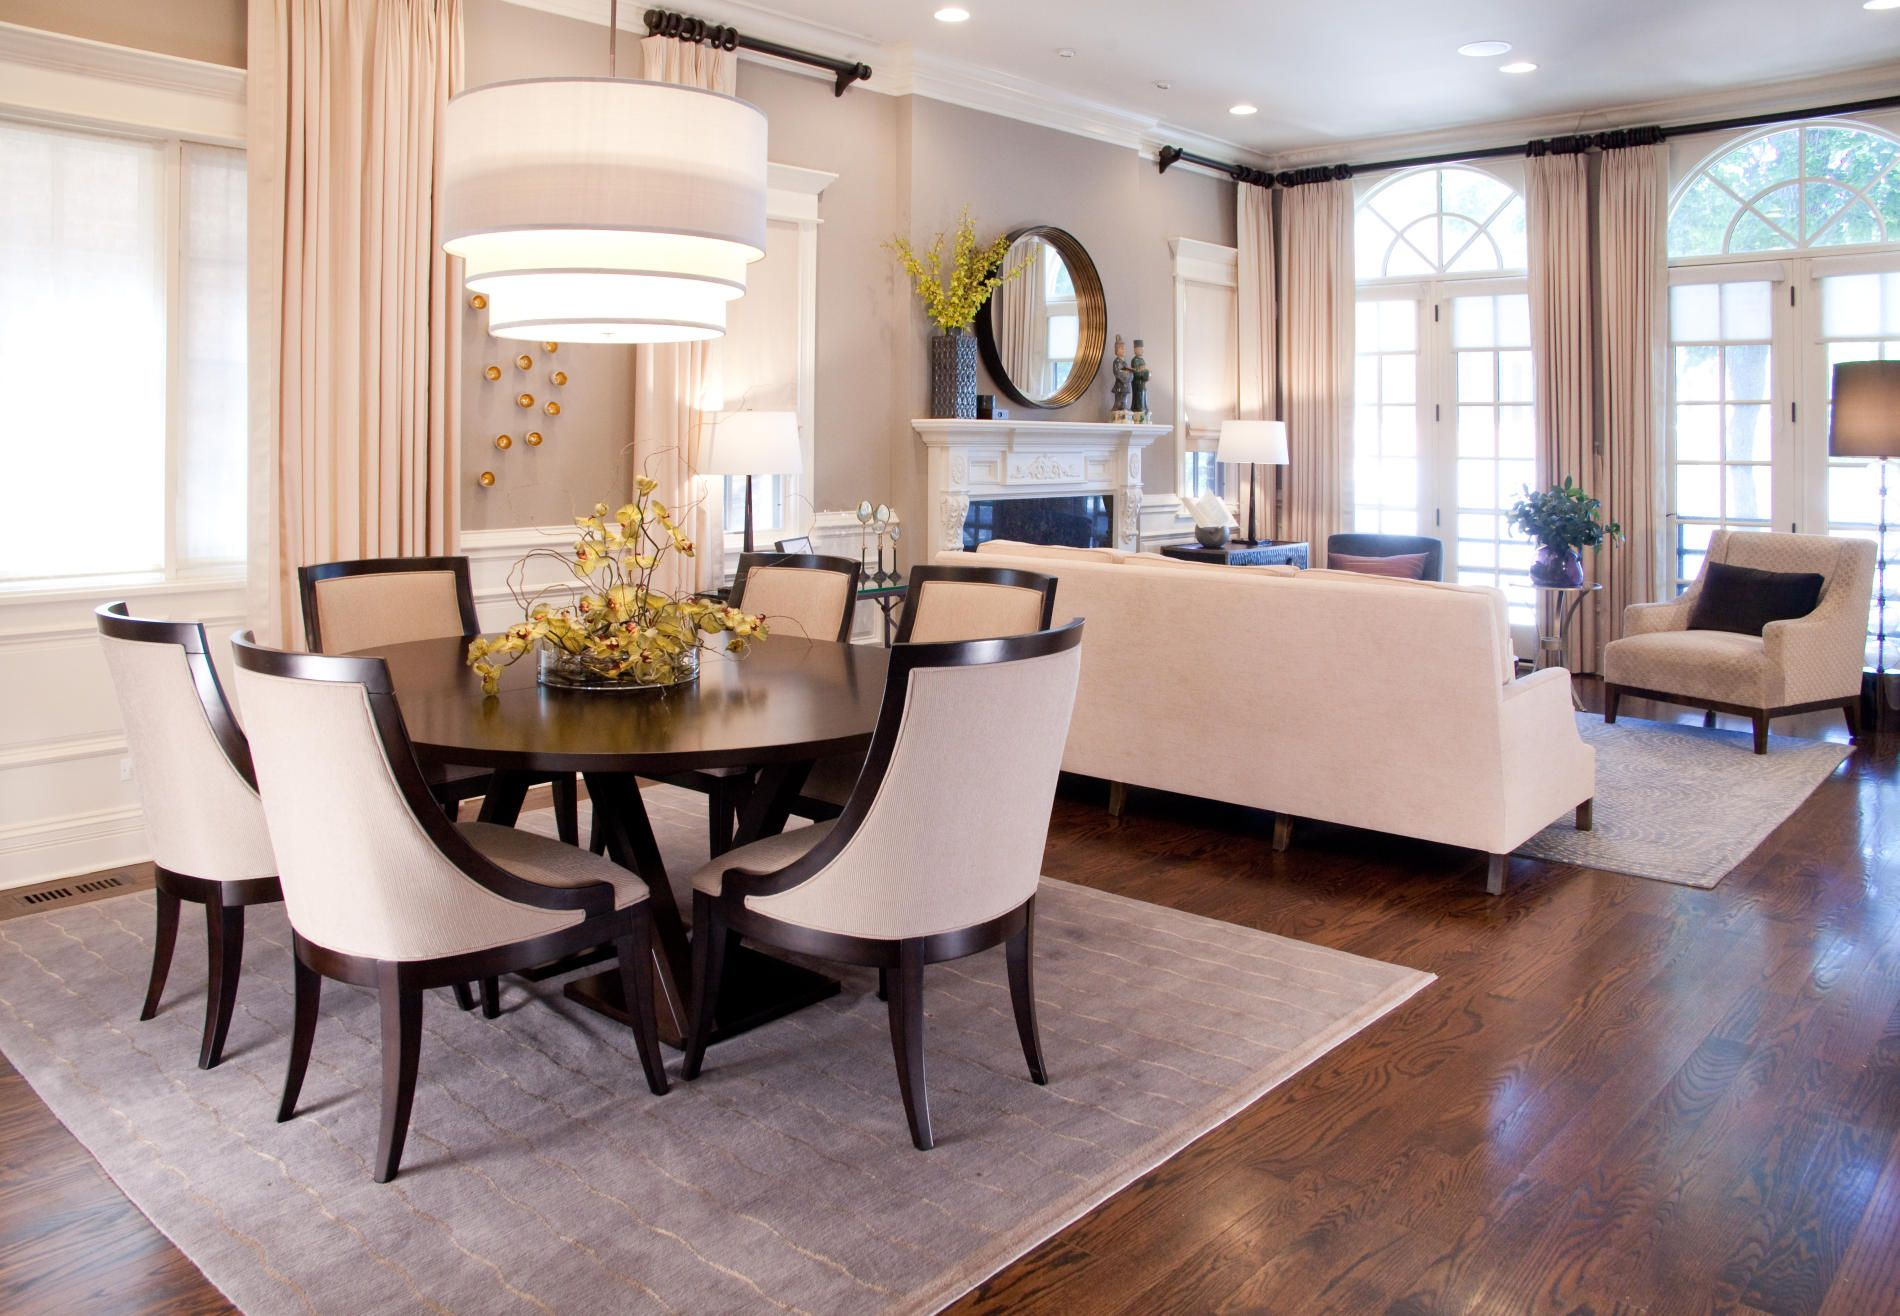 6 Tips For Staging Your Home For Free Round Dining Room Table